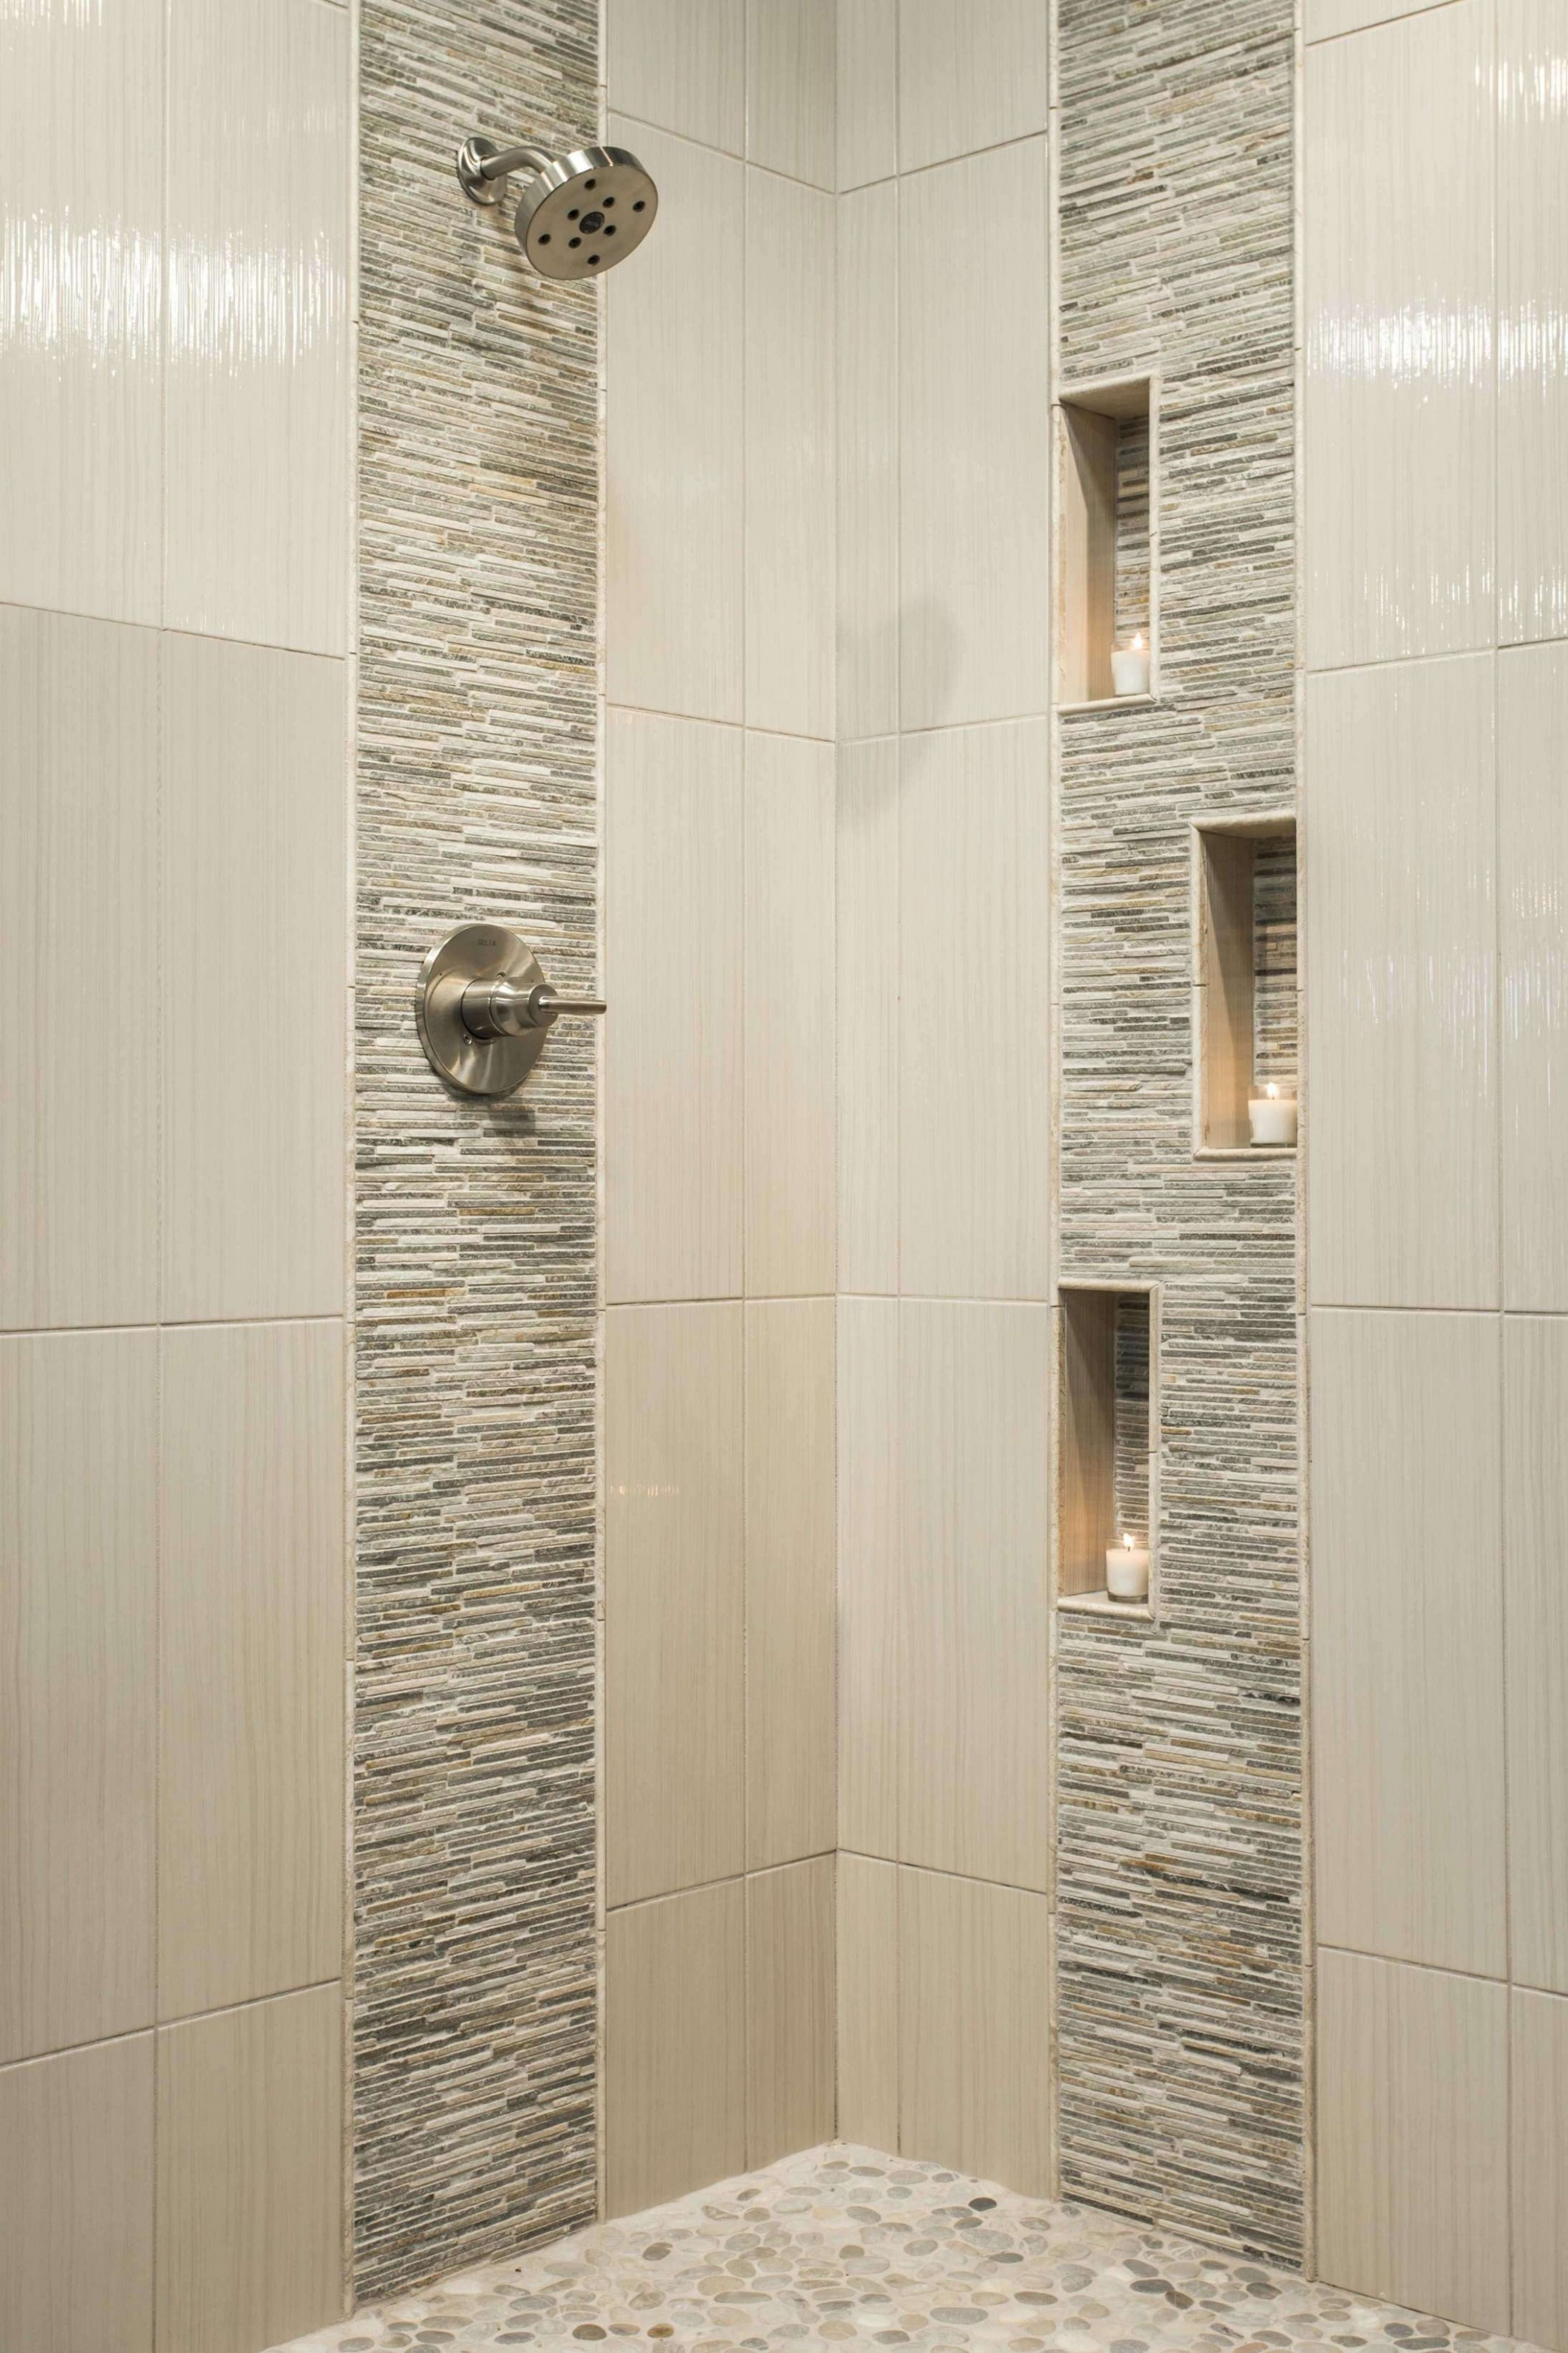 Hardwood Floor Store Of 20 Best Of Tile and Flooring Stores Flooring Ideas Part 5377 Regarding Tile and Flooring Stores Elegant Mosaic Tile Ideas for Bathroom Jackolanternliquors Of 20 Best Of